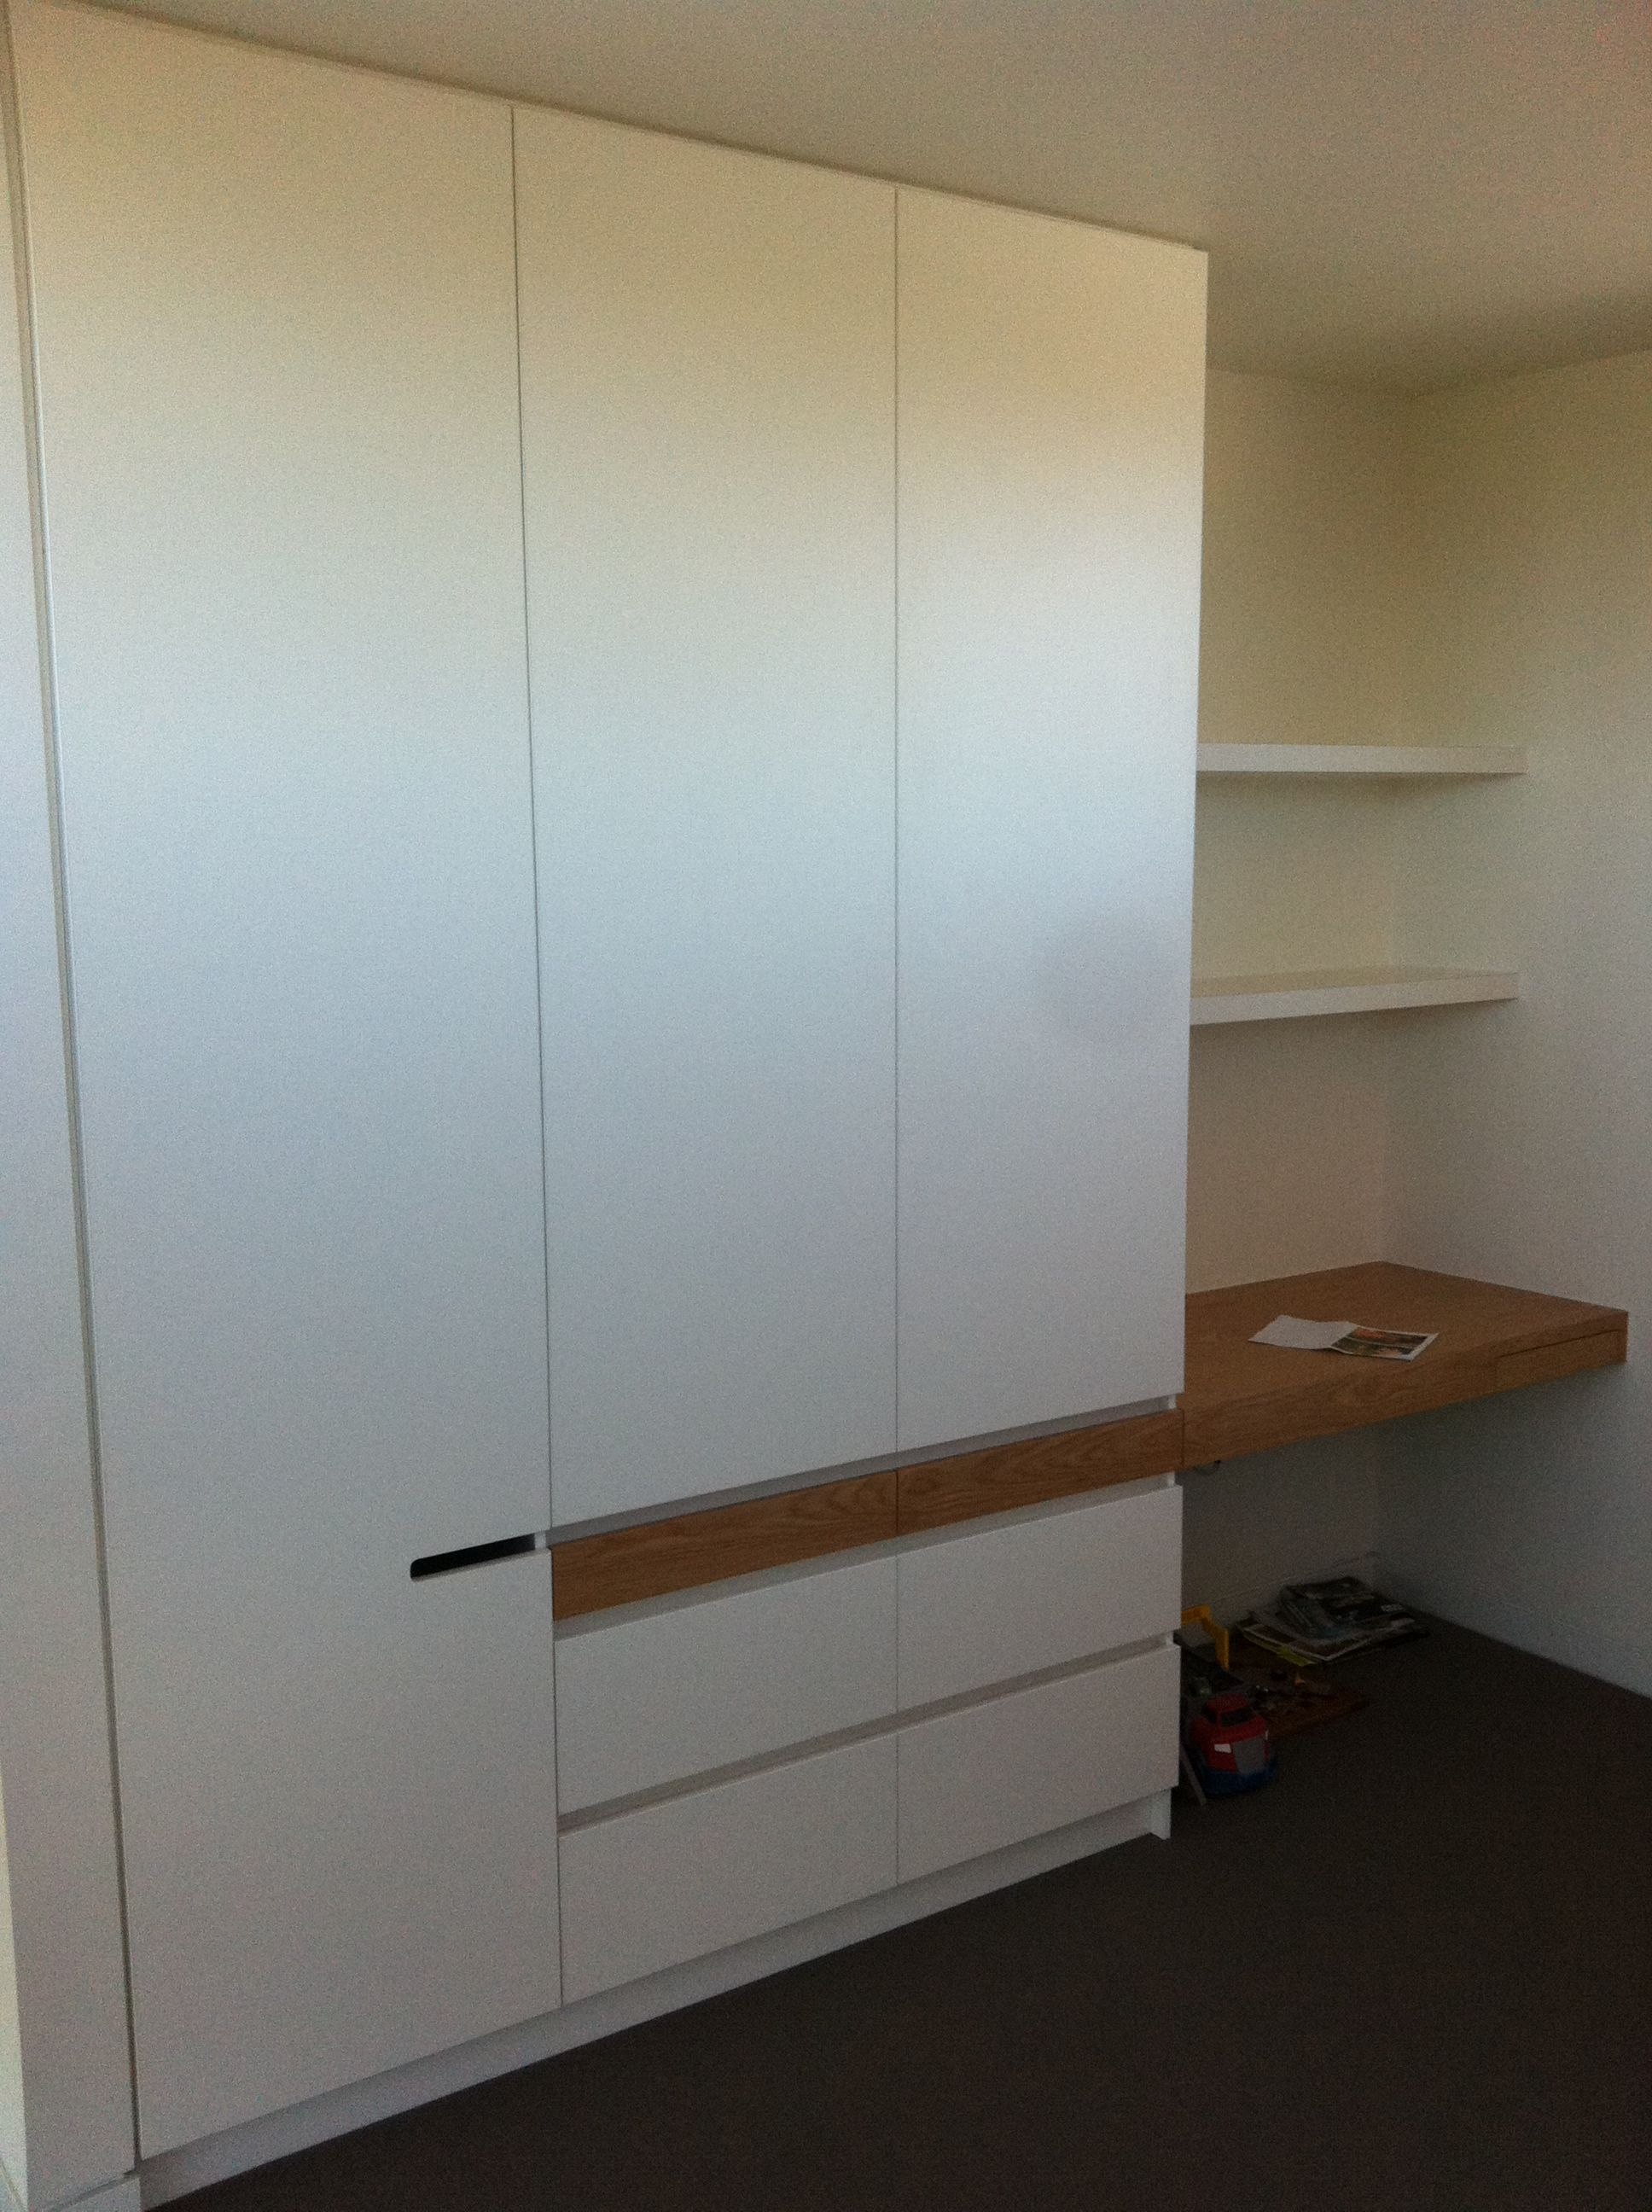 Best Bedroom Cupboard Study White Melamine Doors With 2Mm Pvc 400 x 300